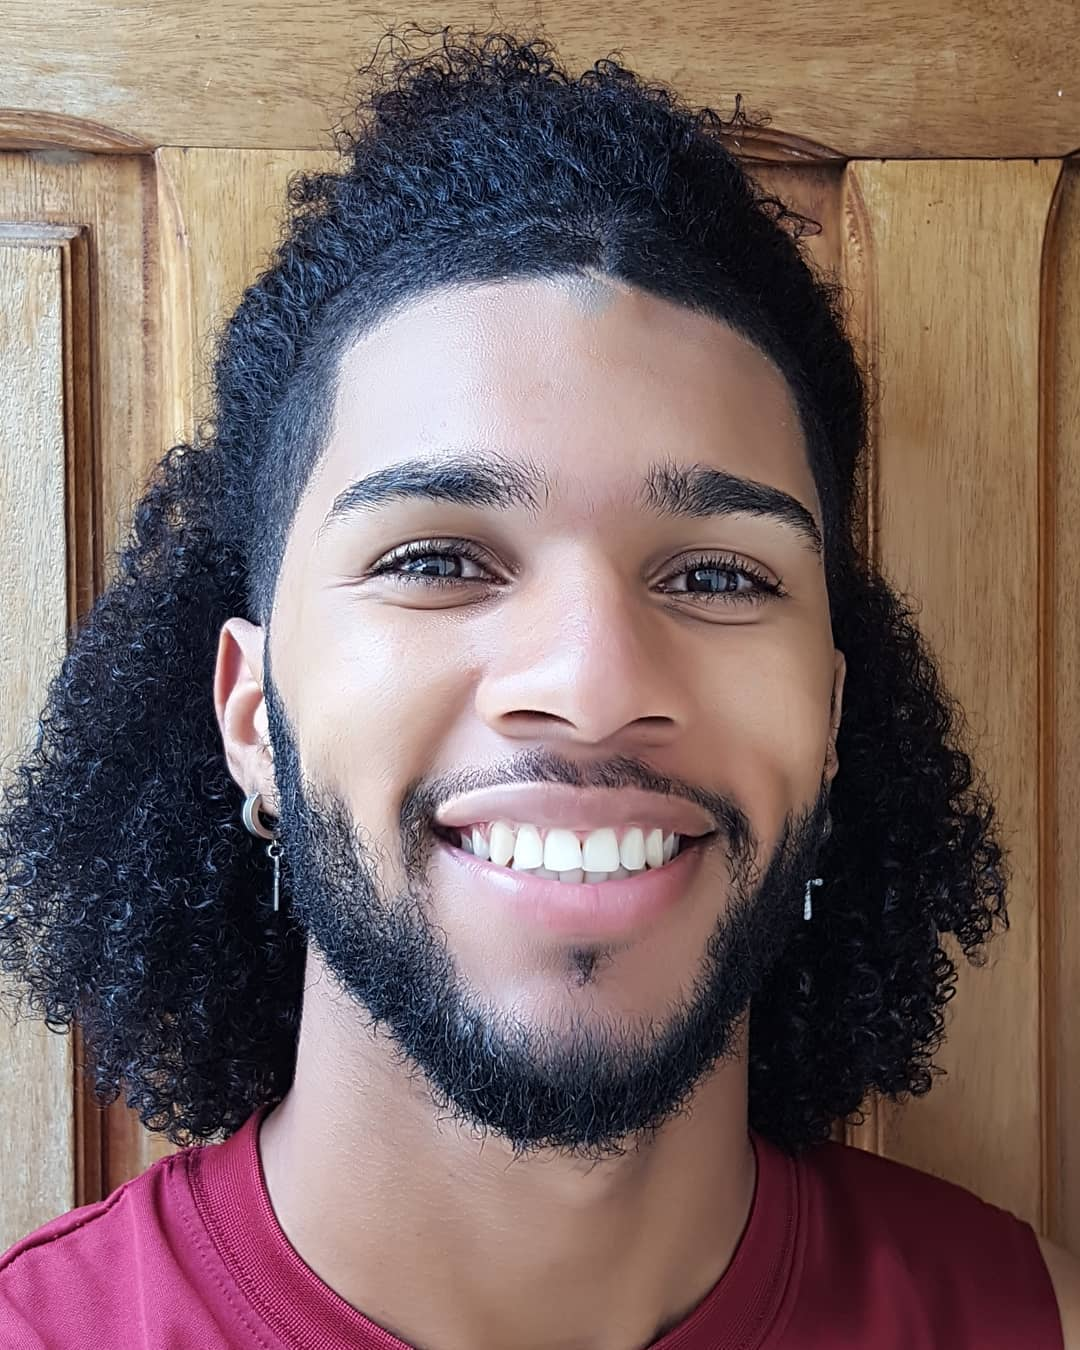 Long Curly Hair For Men: Get These Cuts, Styles + Products